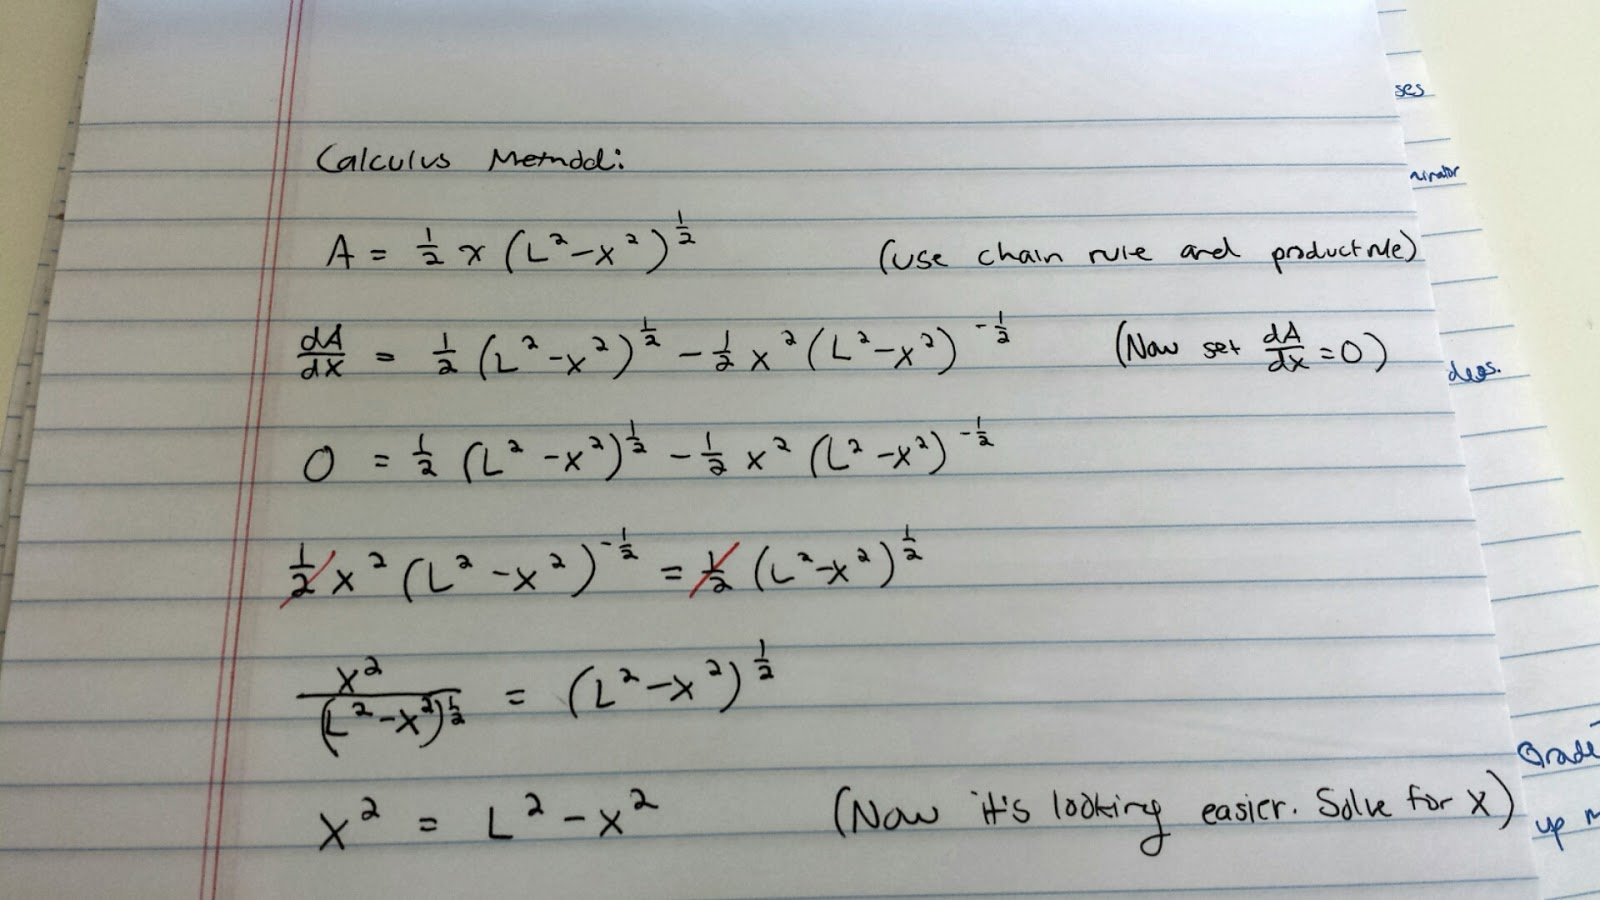 I Found The Derivative Of The Area Equation, And Used The Methods Of The  First Derivative Test To Find The Value Of X